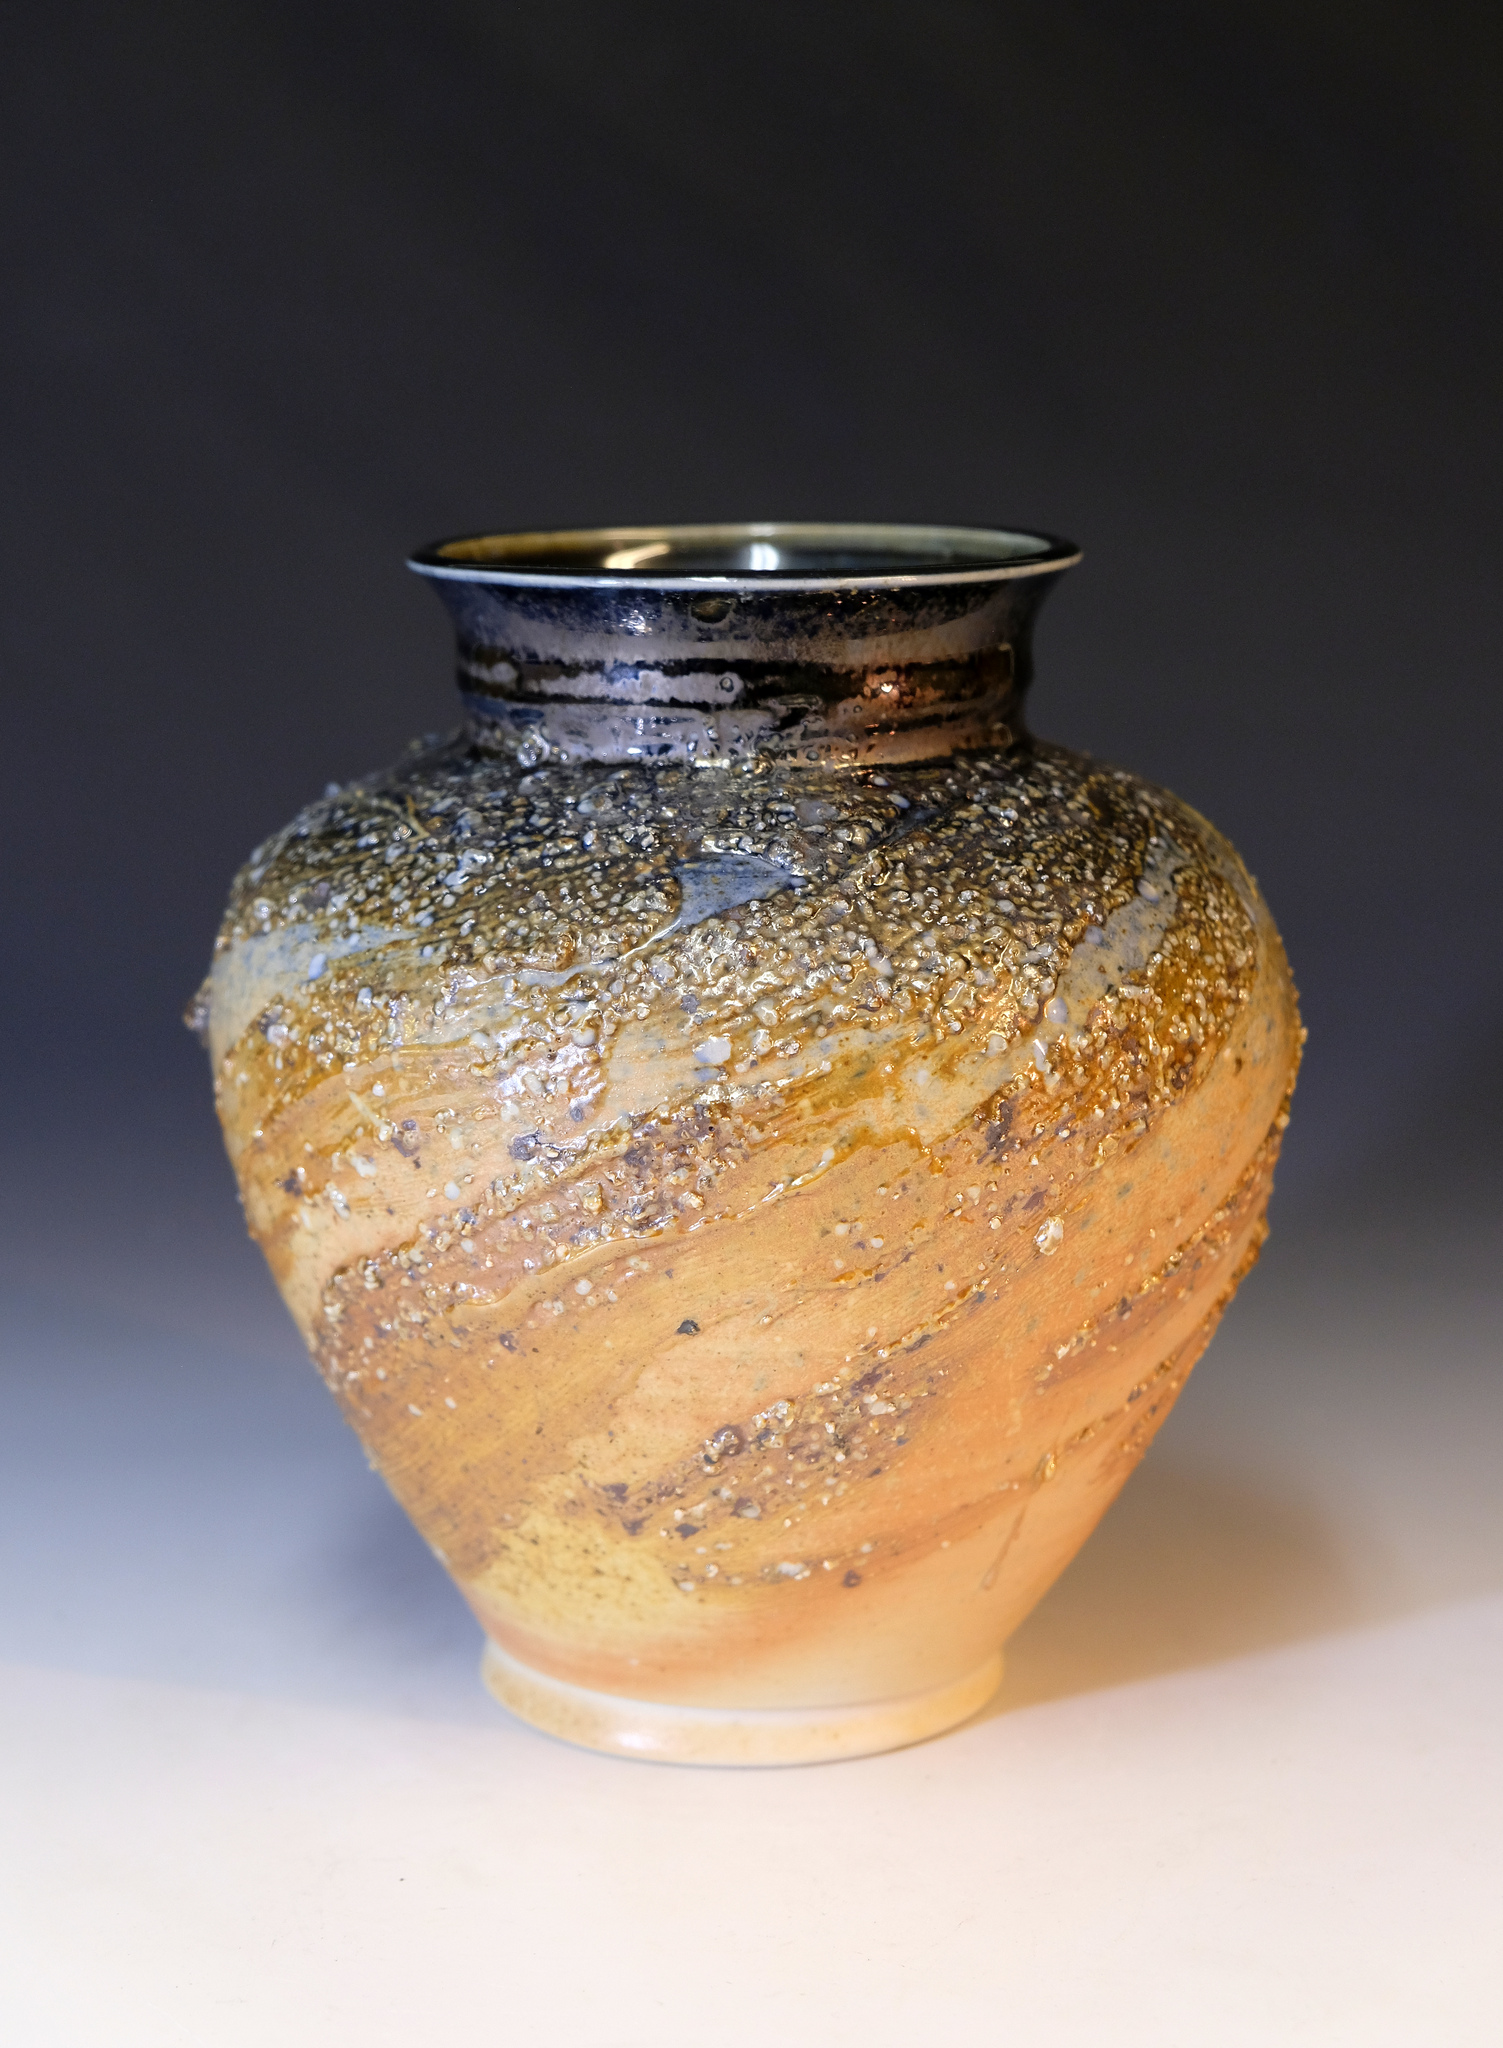 A new vase with local crushed rocks, one of my father Joseph's new designs